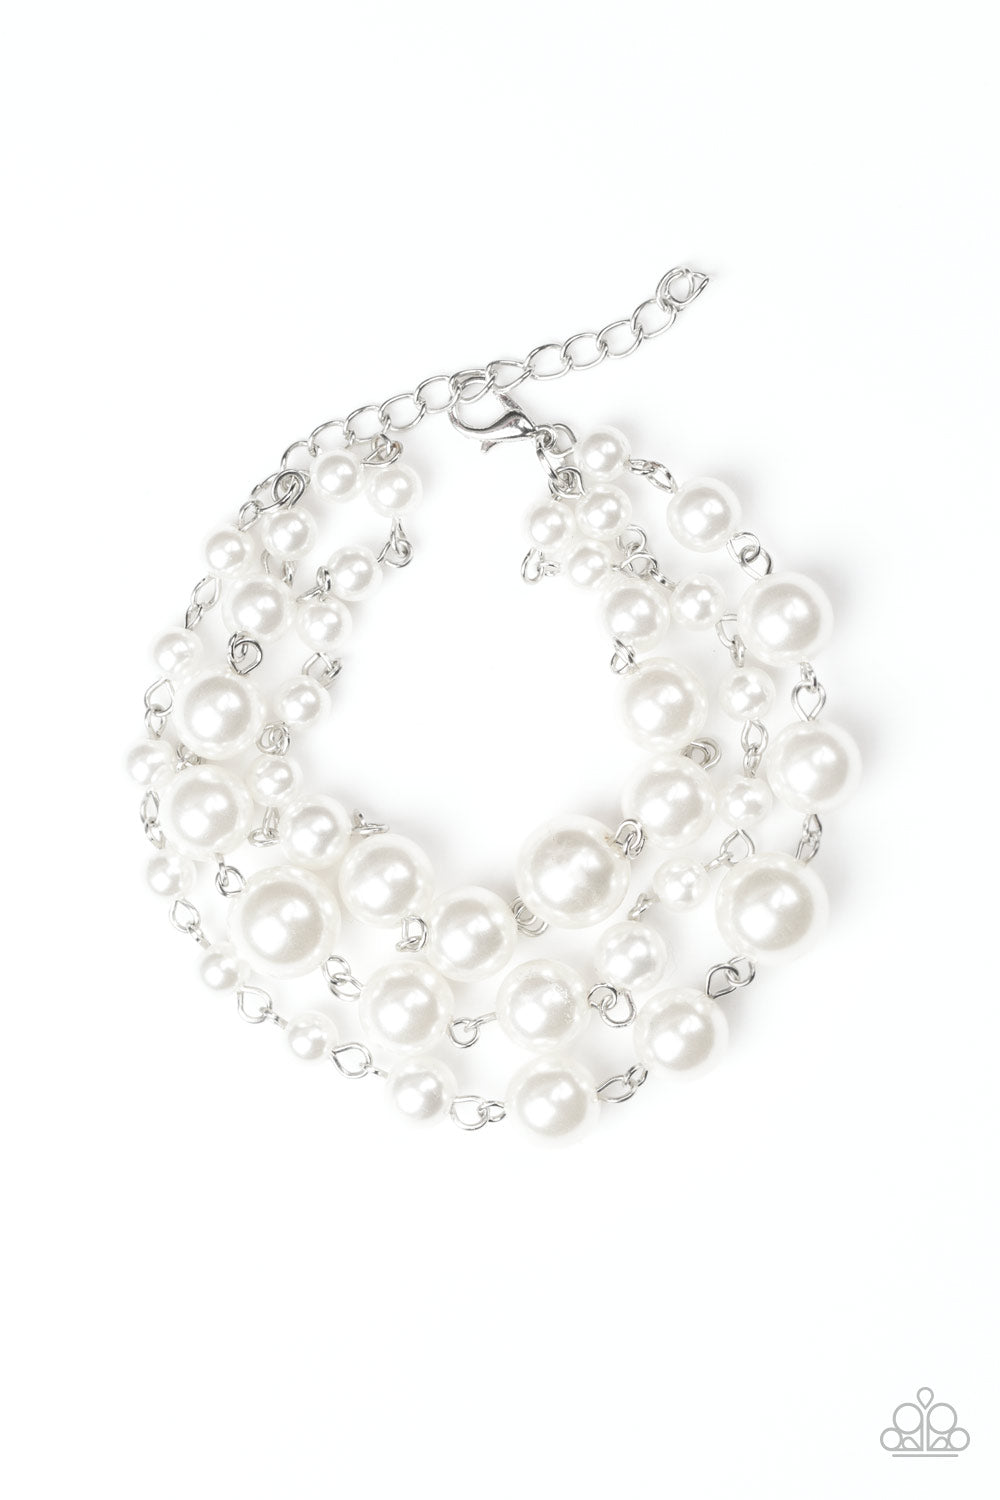 Paparazzi Accessories - Until The End Of TIMELESS - White Bracelet - JMJ Jewelry Collection